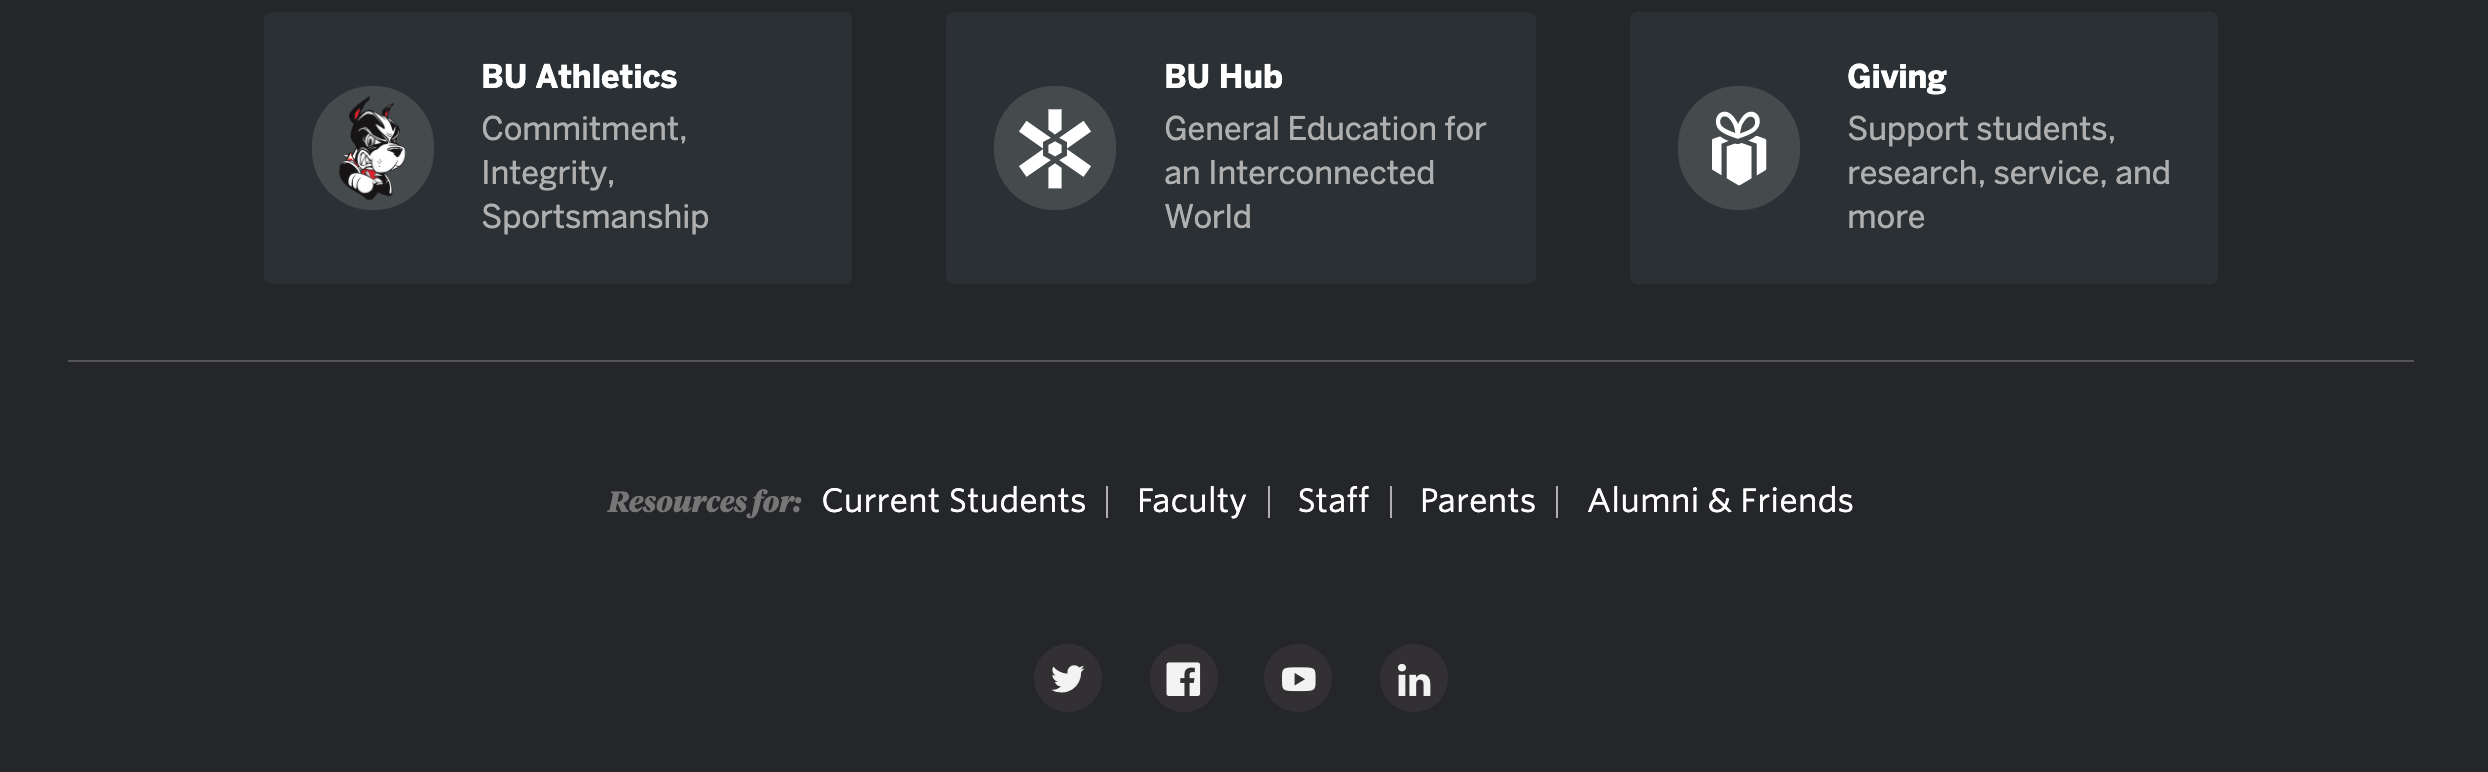 Image of the footer used for the Boston University website